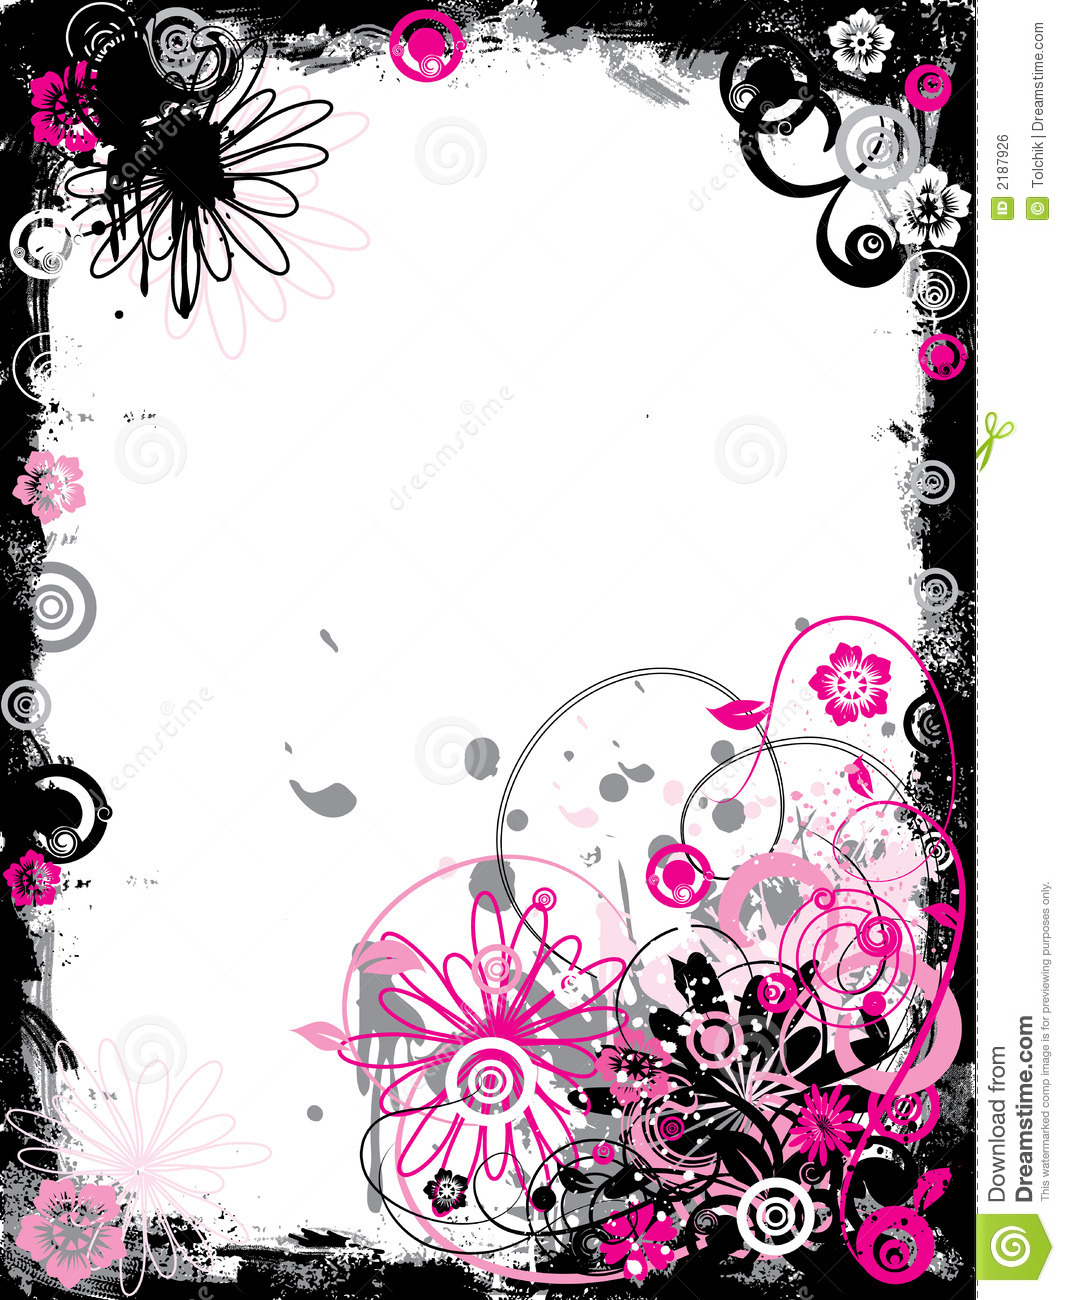 Royalty Free Stock Image  Grunge floral border  vectorVector Floral Border